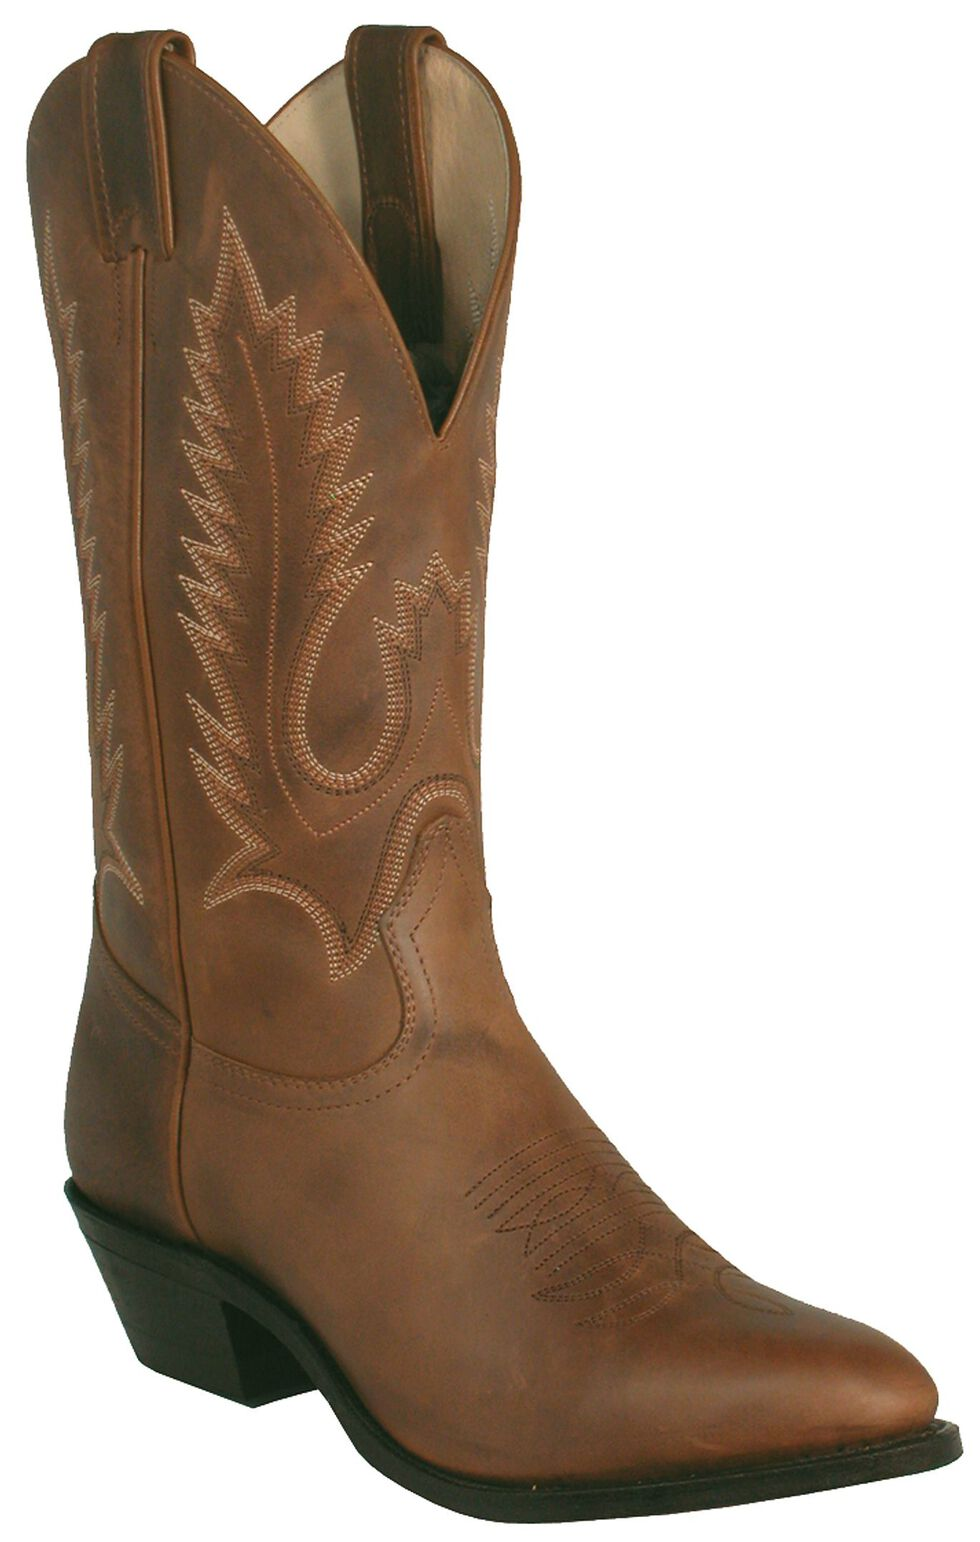 Boulet Rider Cowboy Boots - Medium Toe, , hi-res